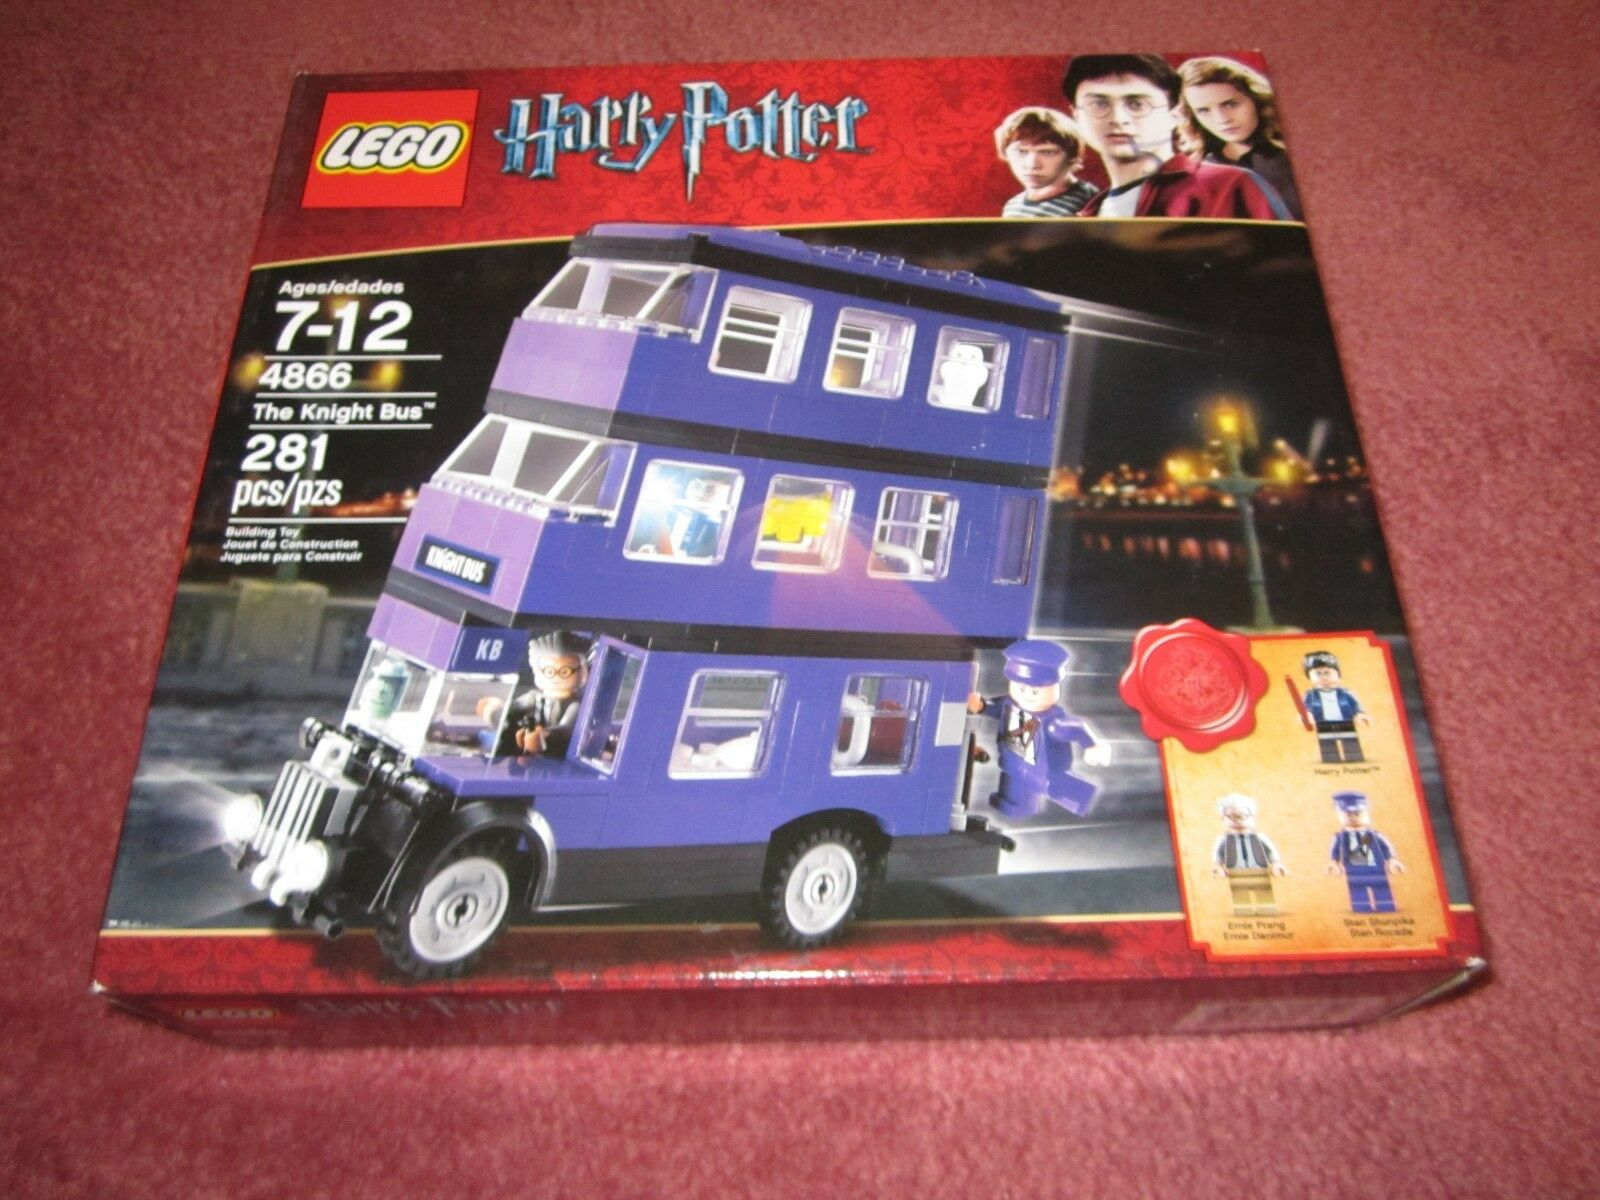 LEGO HARRY POTTER POTTER POTTER KNIGHT BUS 4866 - NEW BOXED SEALED - SEE PHOTOS 05f8f1